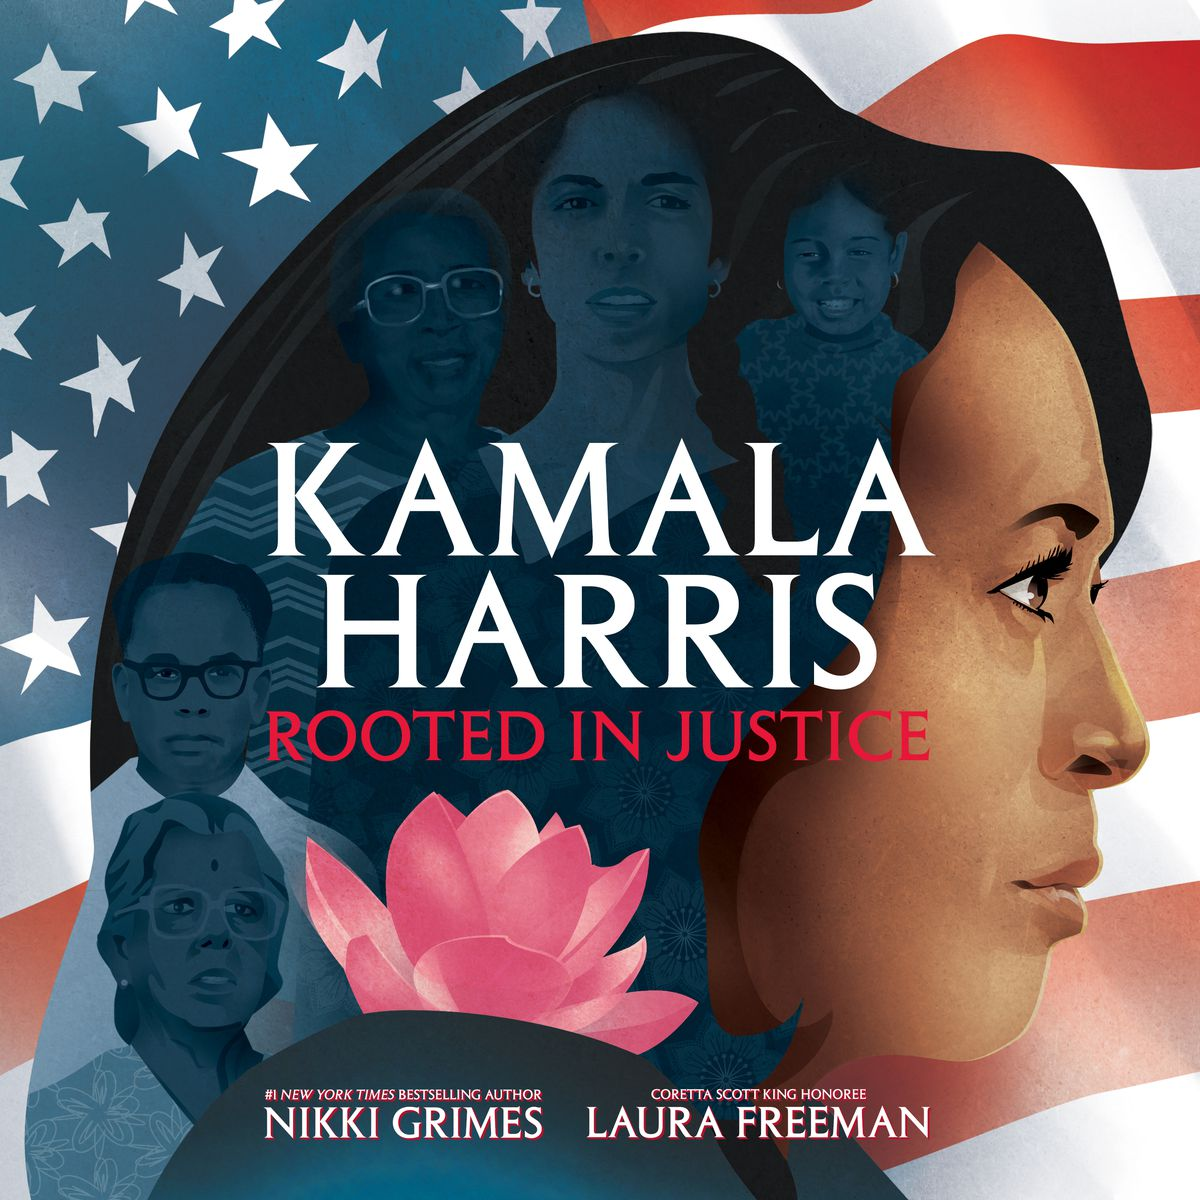 Kamala Harris picture book coming Aug. 25 - Chicago Sun-Times